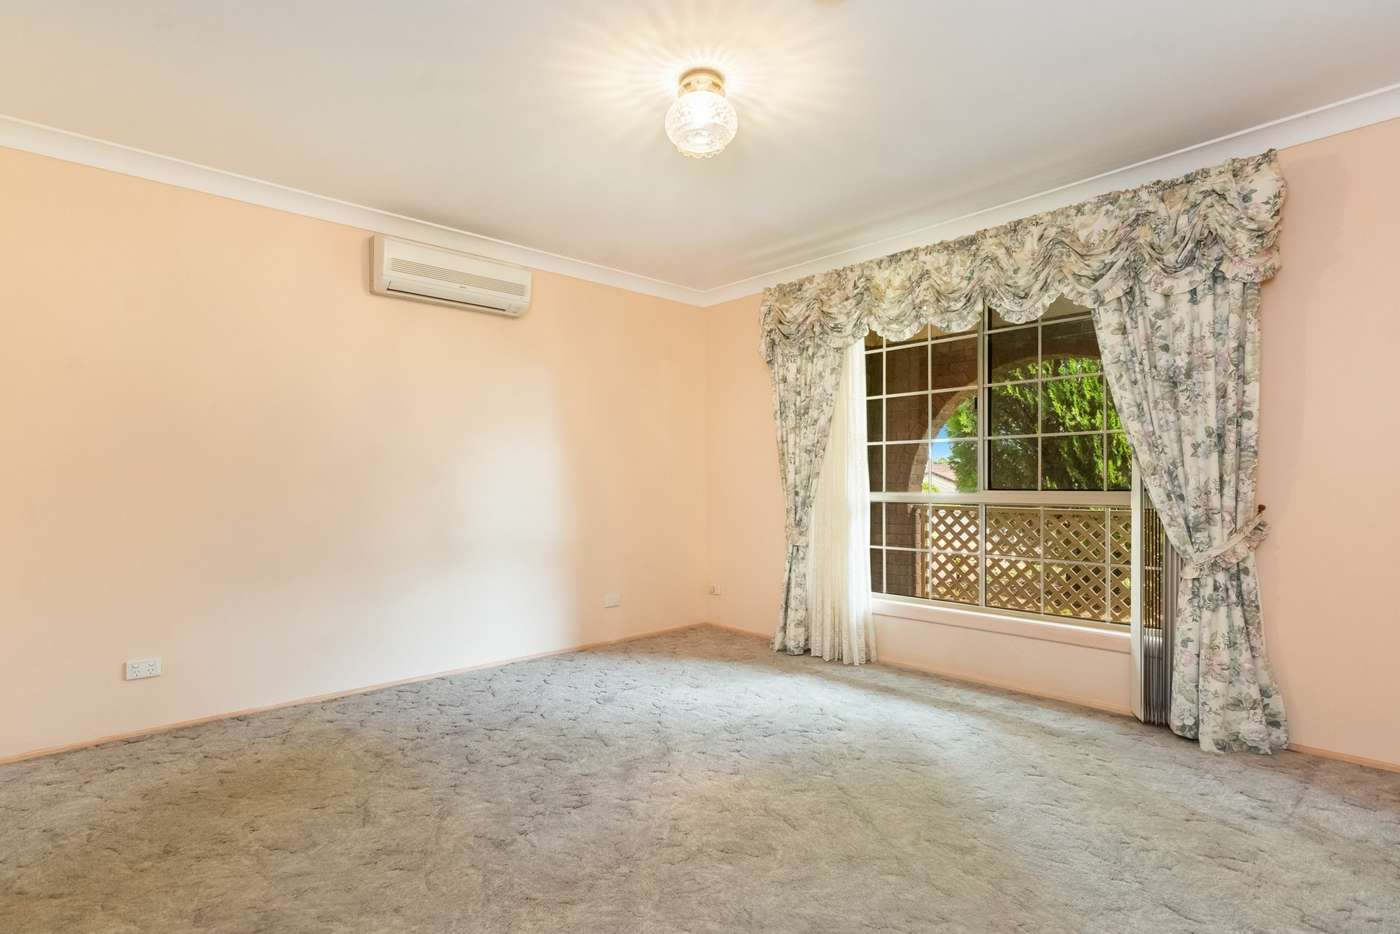 Sixth view of Homely house listing, 44 Beaumont Drive, East Lismore NSW 2480